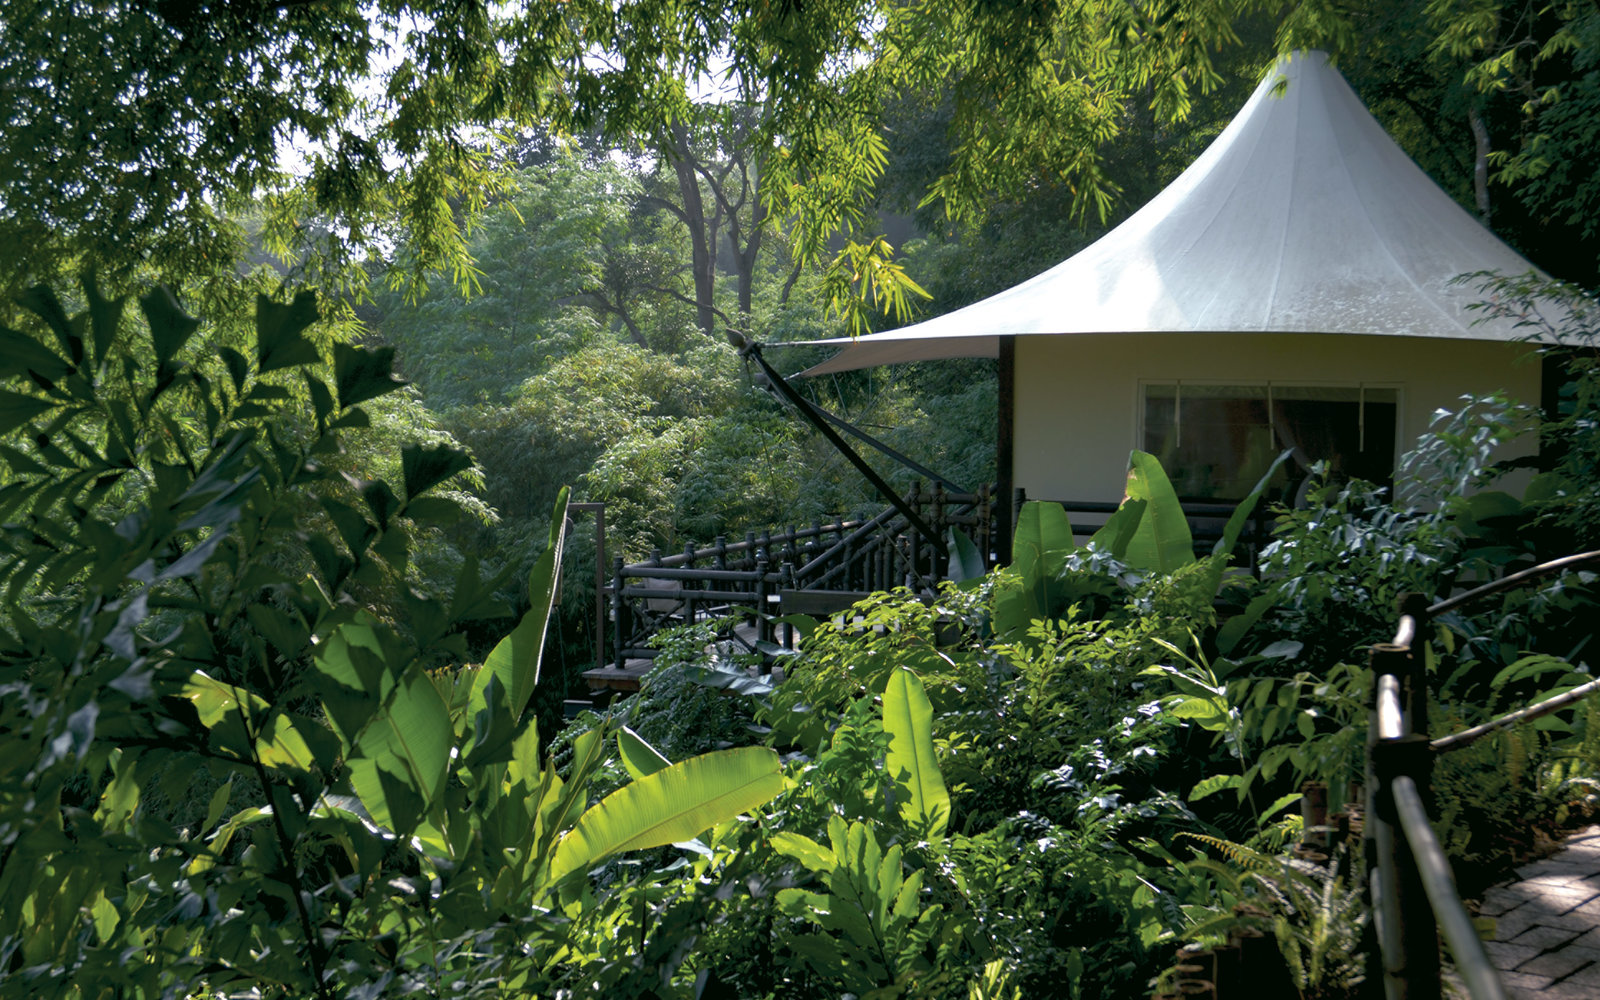 Four-Seasons-Tented-Camp-Golden-Triangle-Chiang-Rai-Thailand